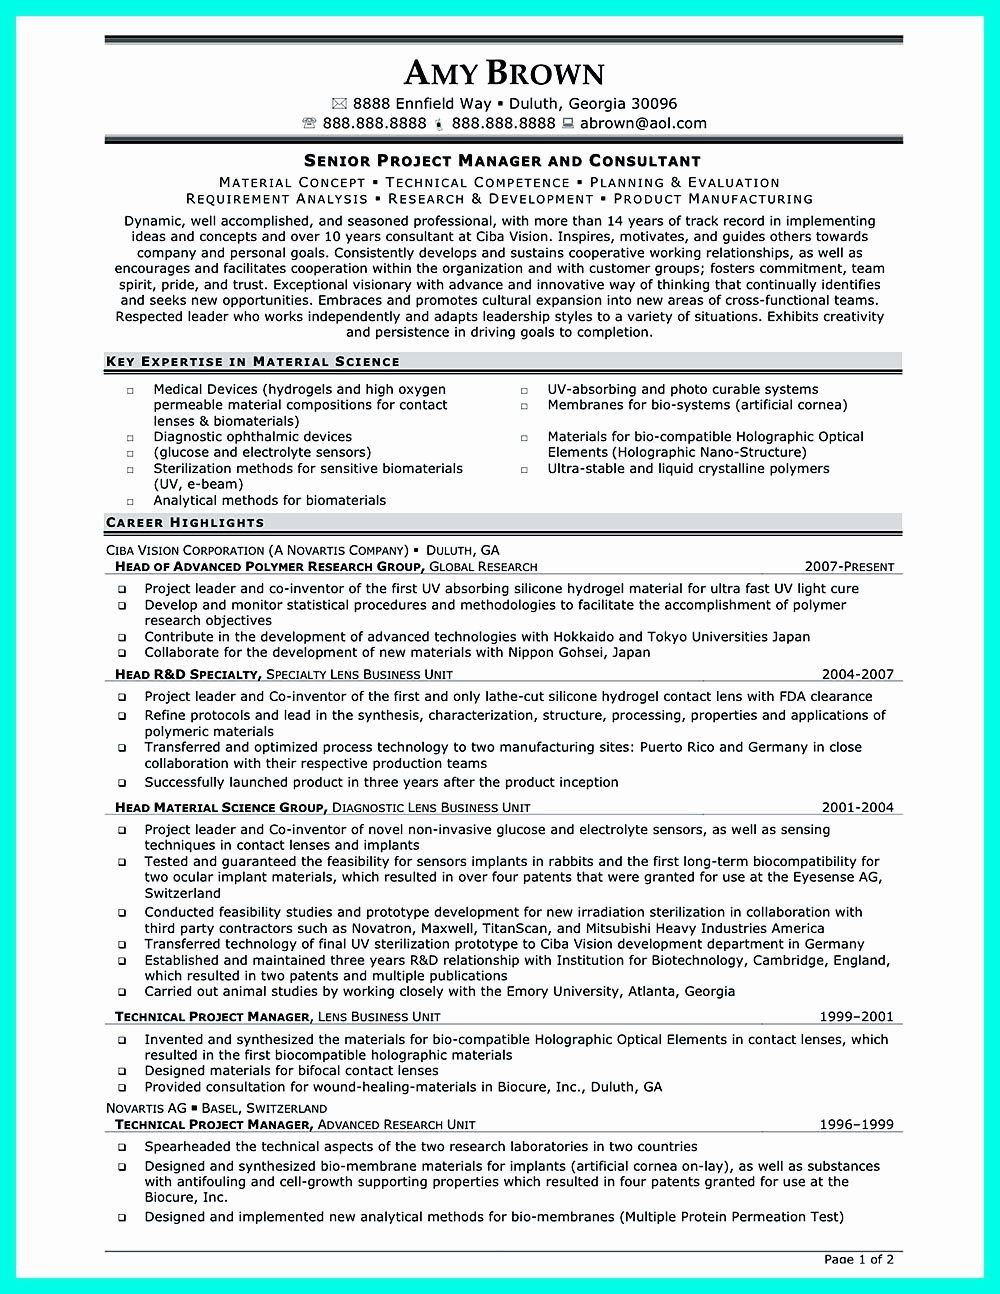 20 Clinical Research Coordinator Resume In 2020 Project